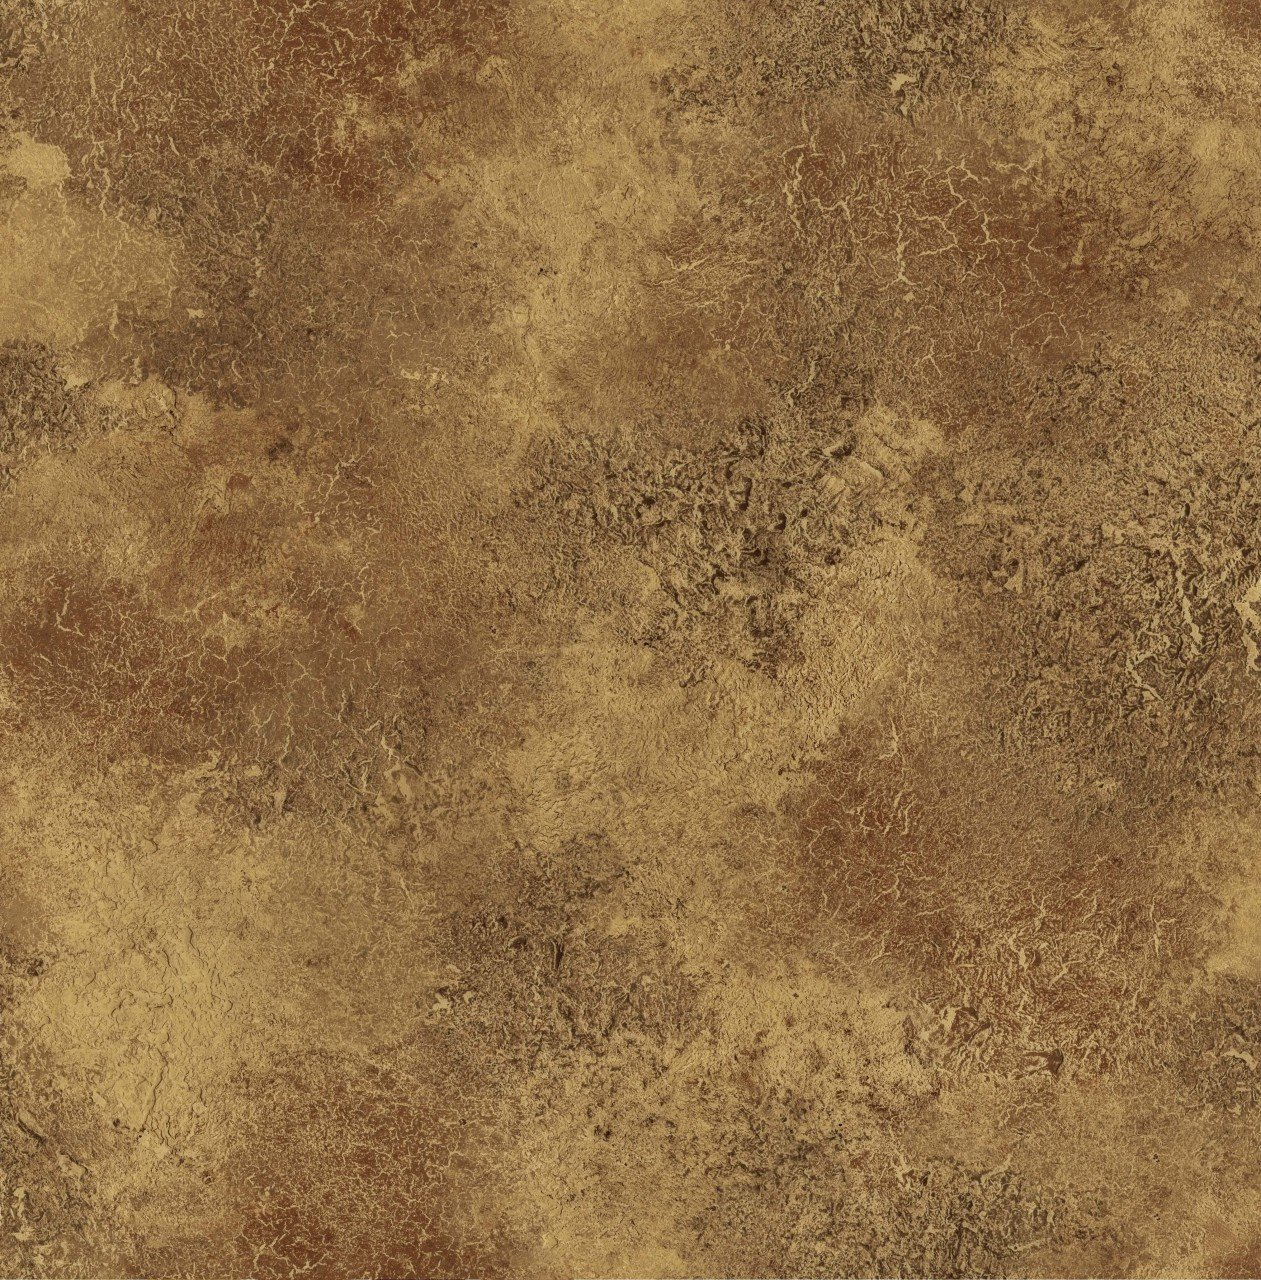 Bronze WA10057 Antique Plaster Wallpaper   Textures Wallpaper 1261x1280